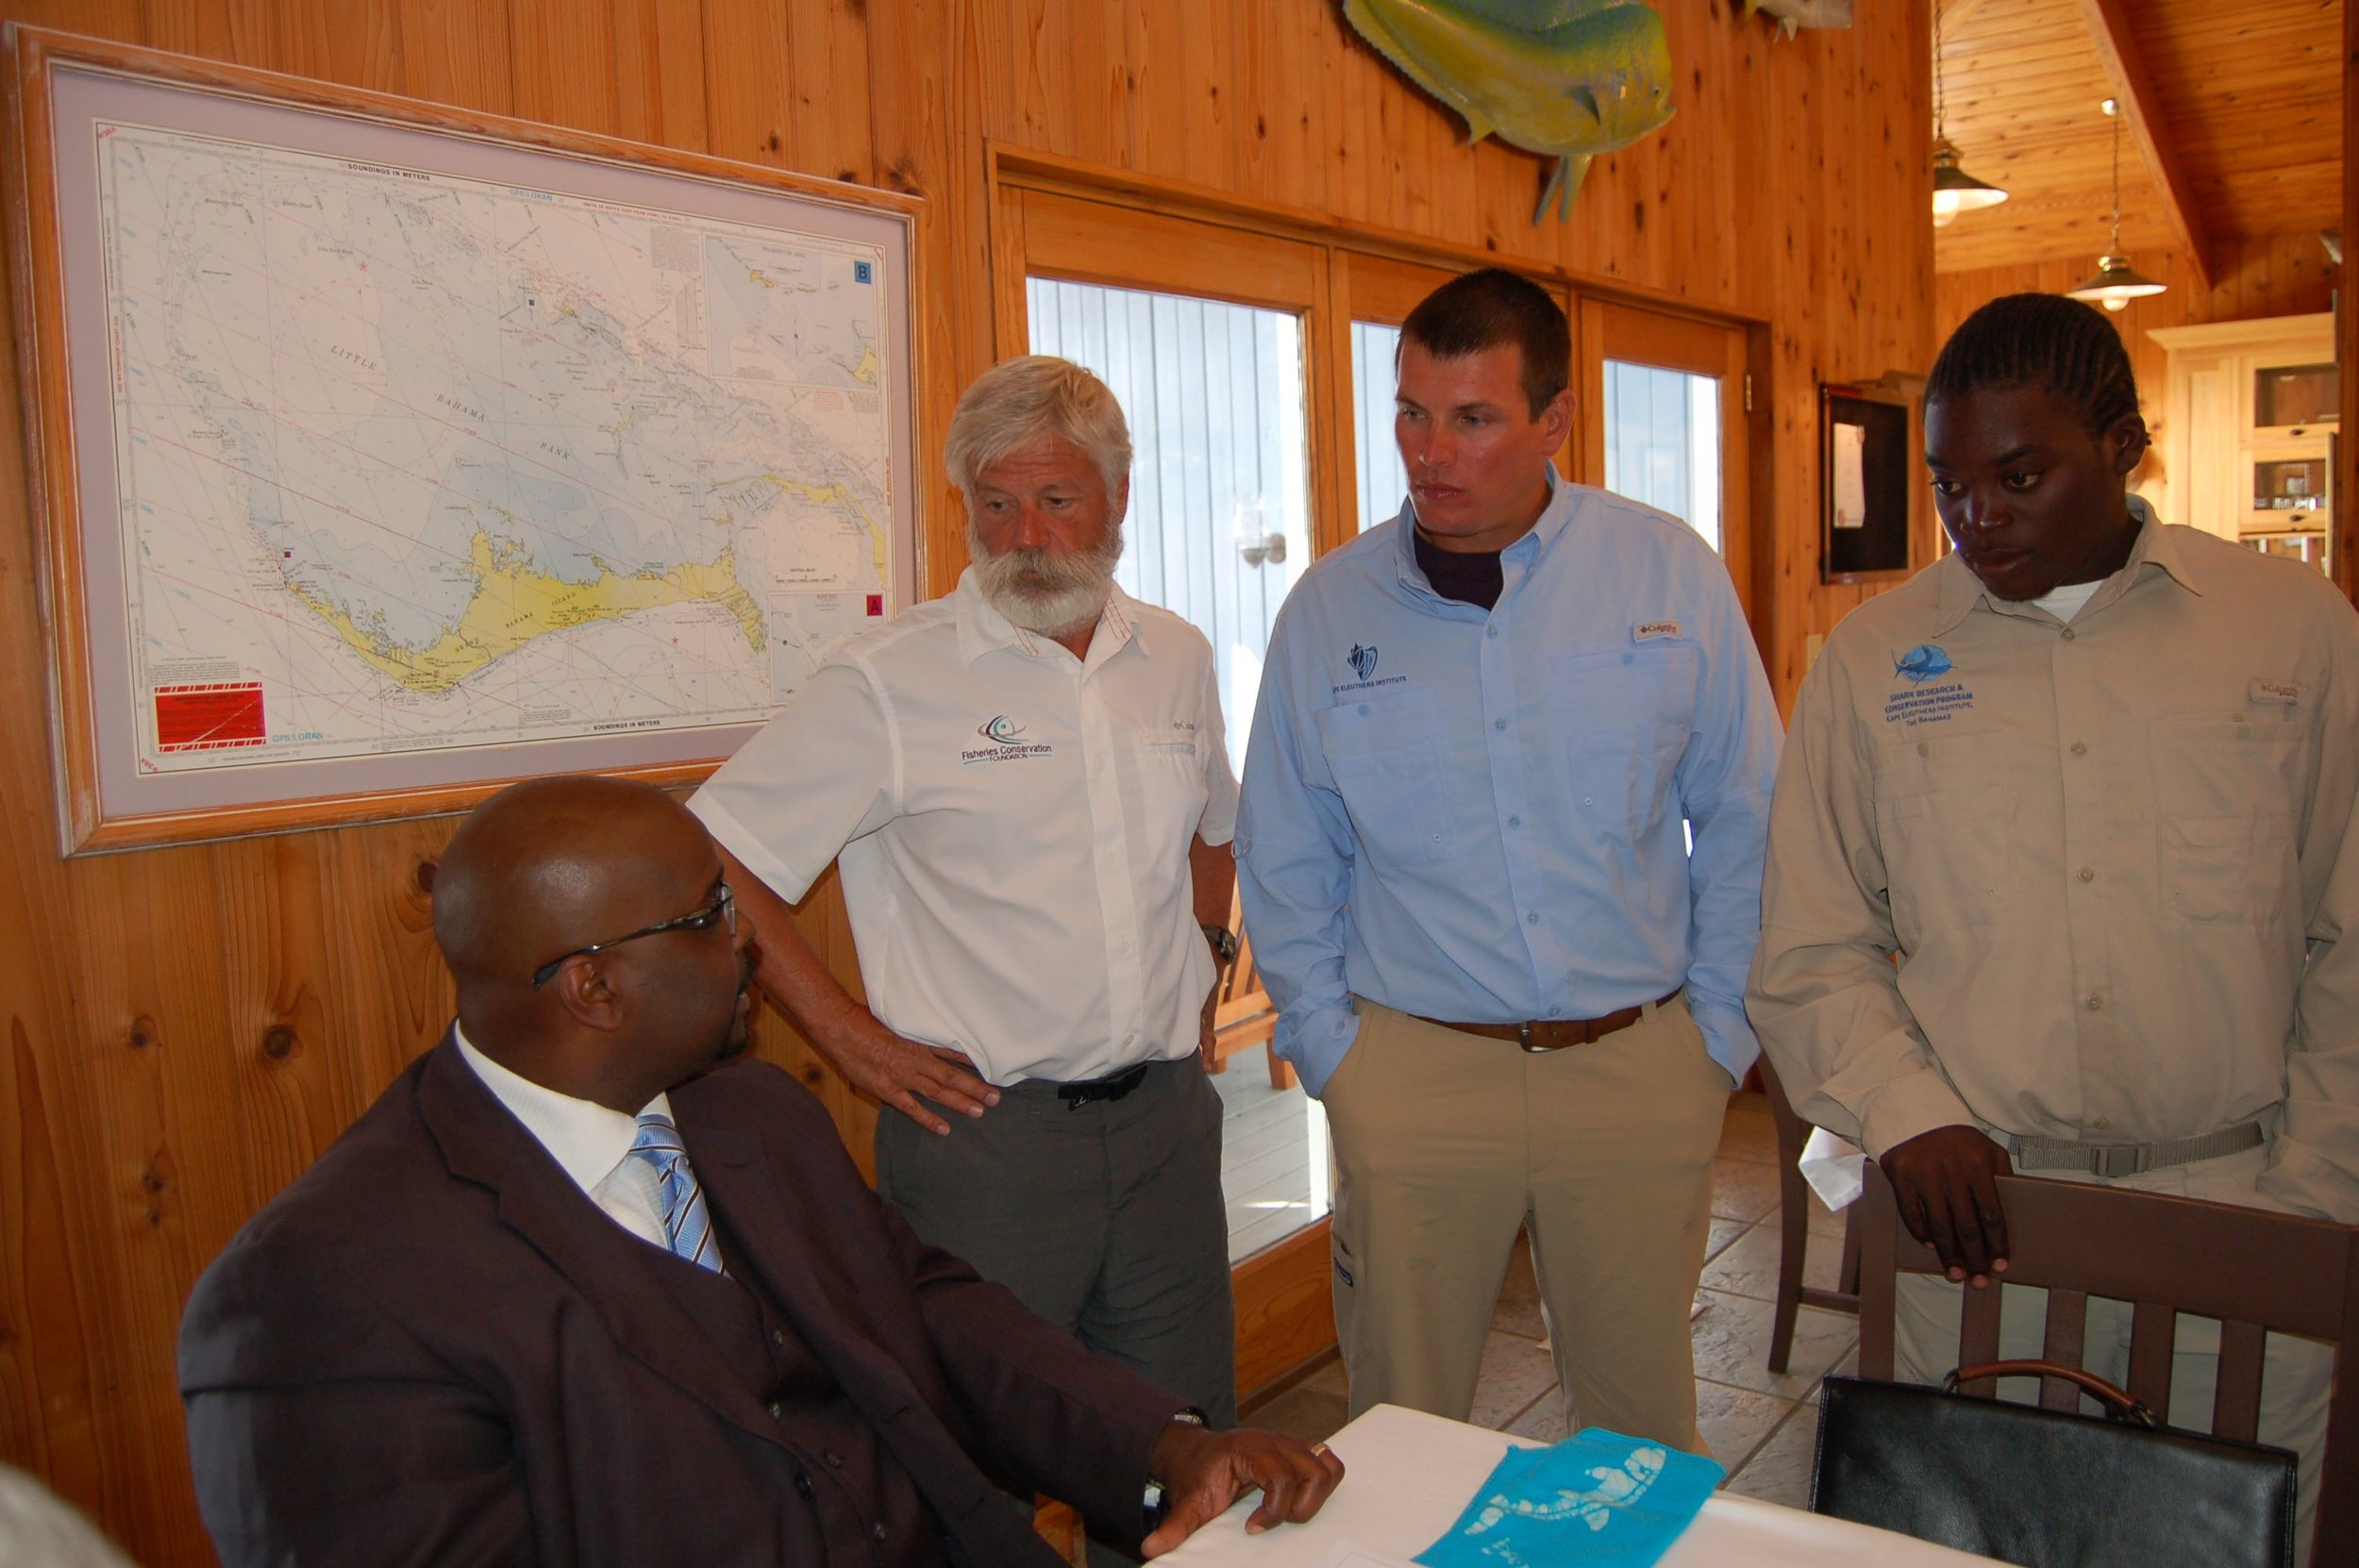 Aaron Shultz, David Philipp, and Malcolm Goodwin with the Prime Minister of the Bahamas